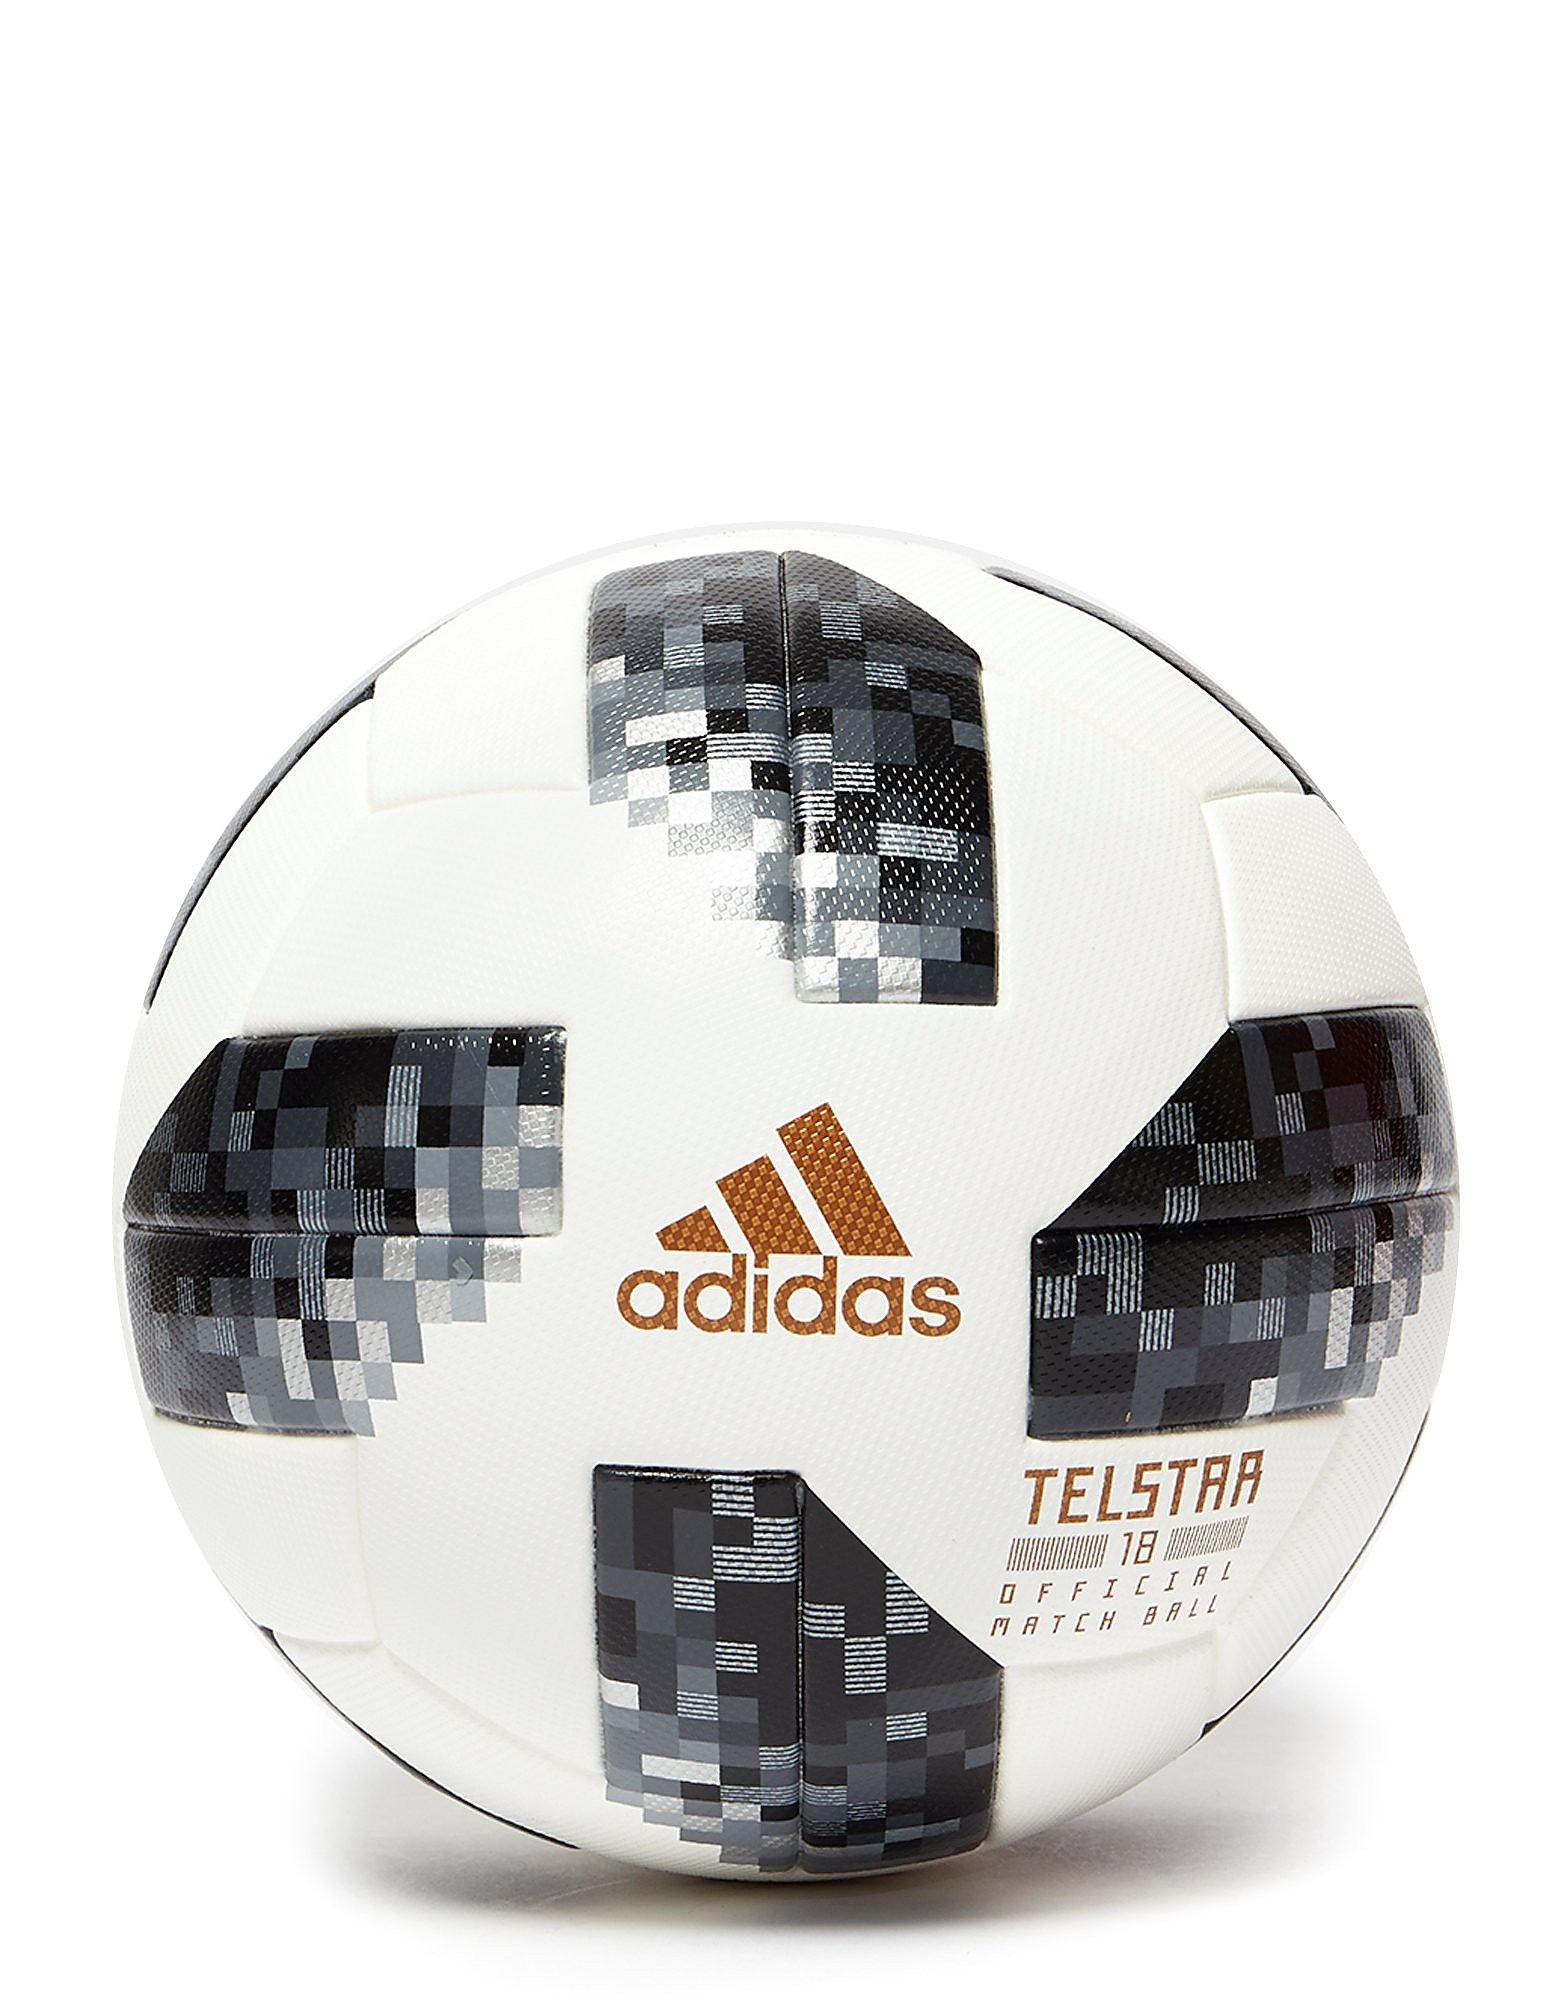 adidas World Cup 2018 Official Match Football Pallone Calcio